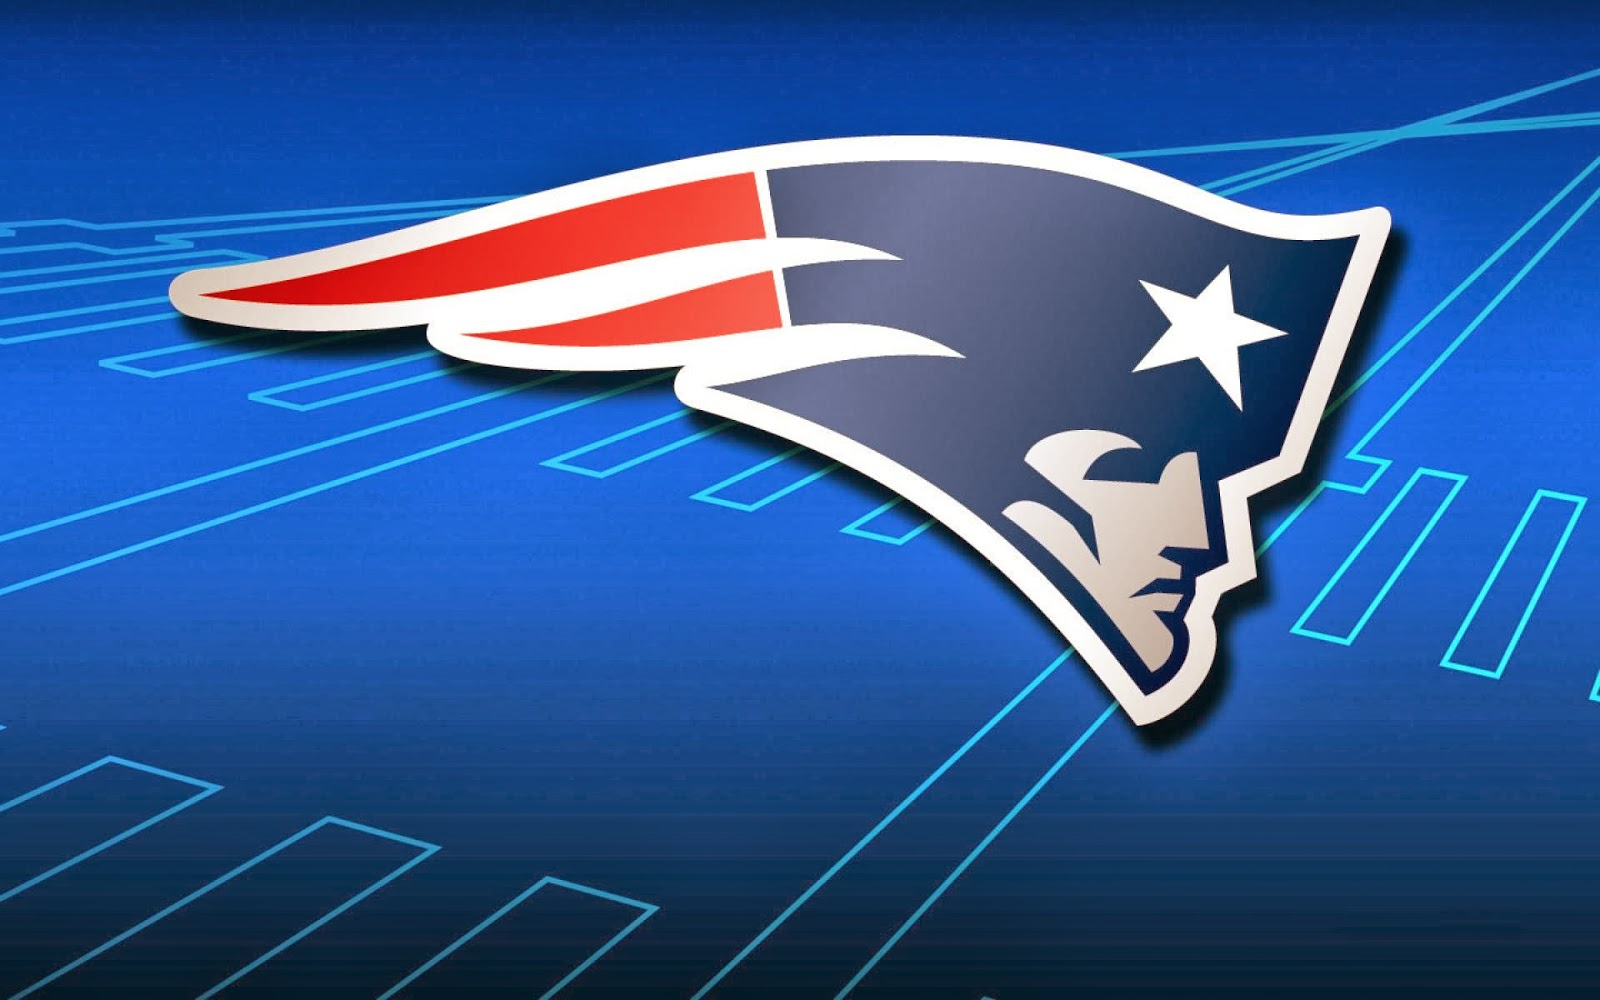 hd wallpaper logo for fans of new england patriots hd